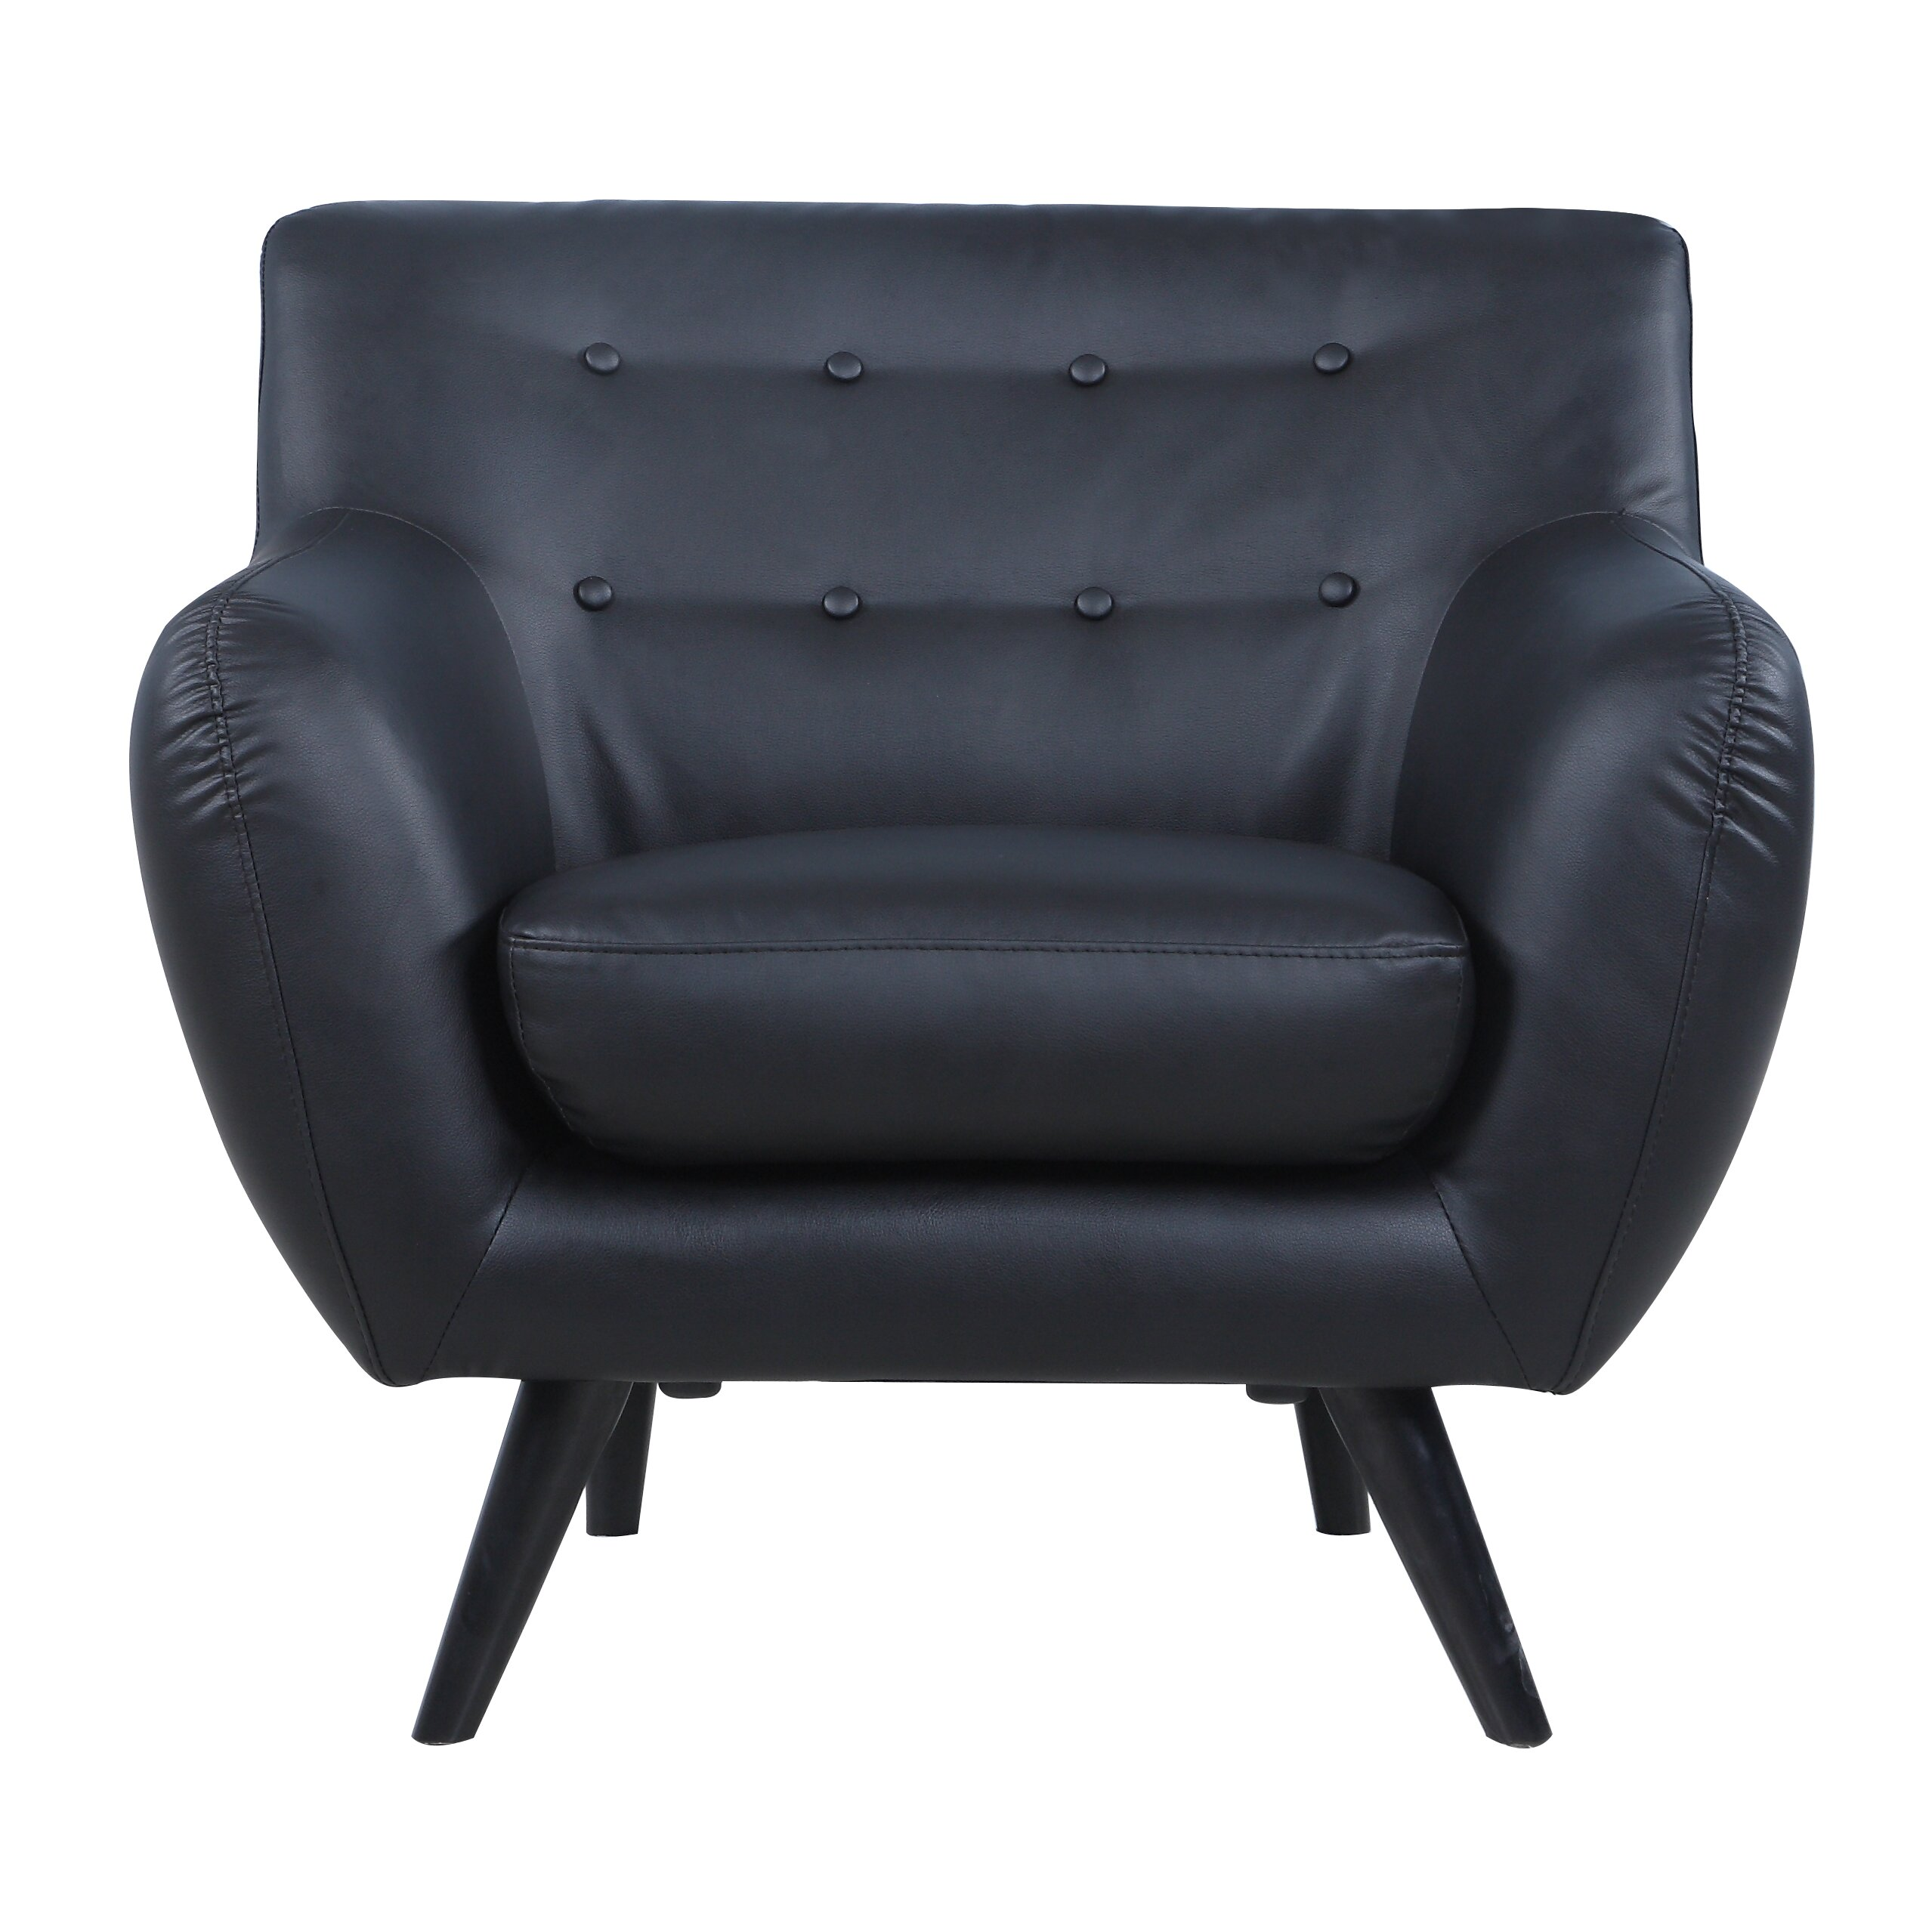 Madison Home USA Mid Century Modern Tufted Bonded Leather